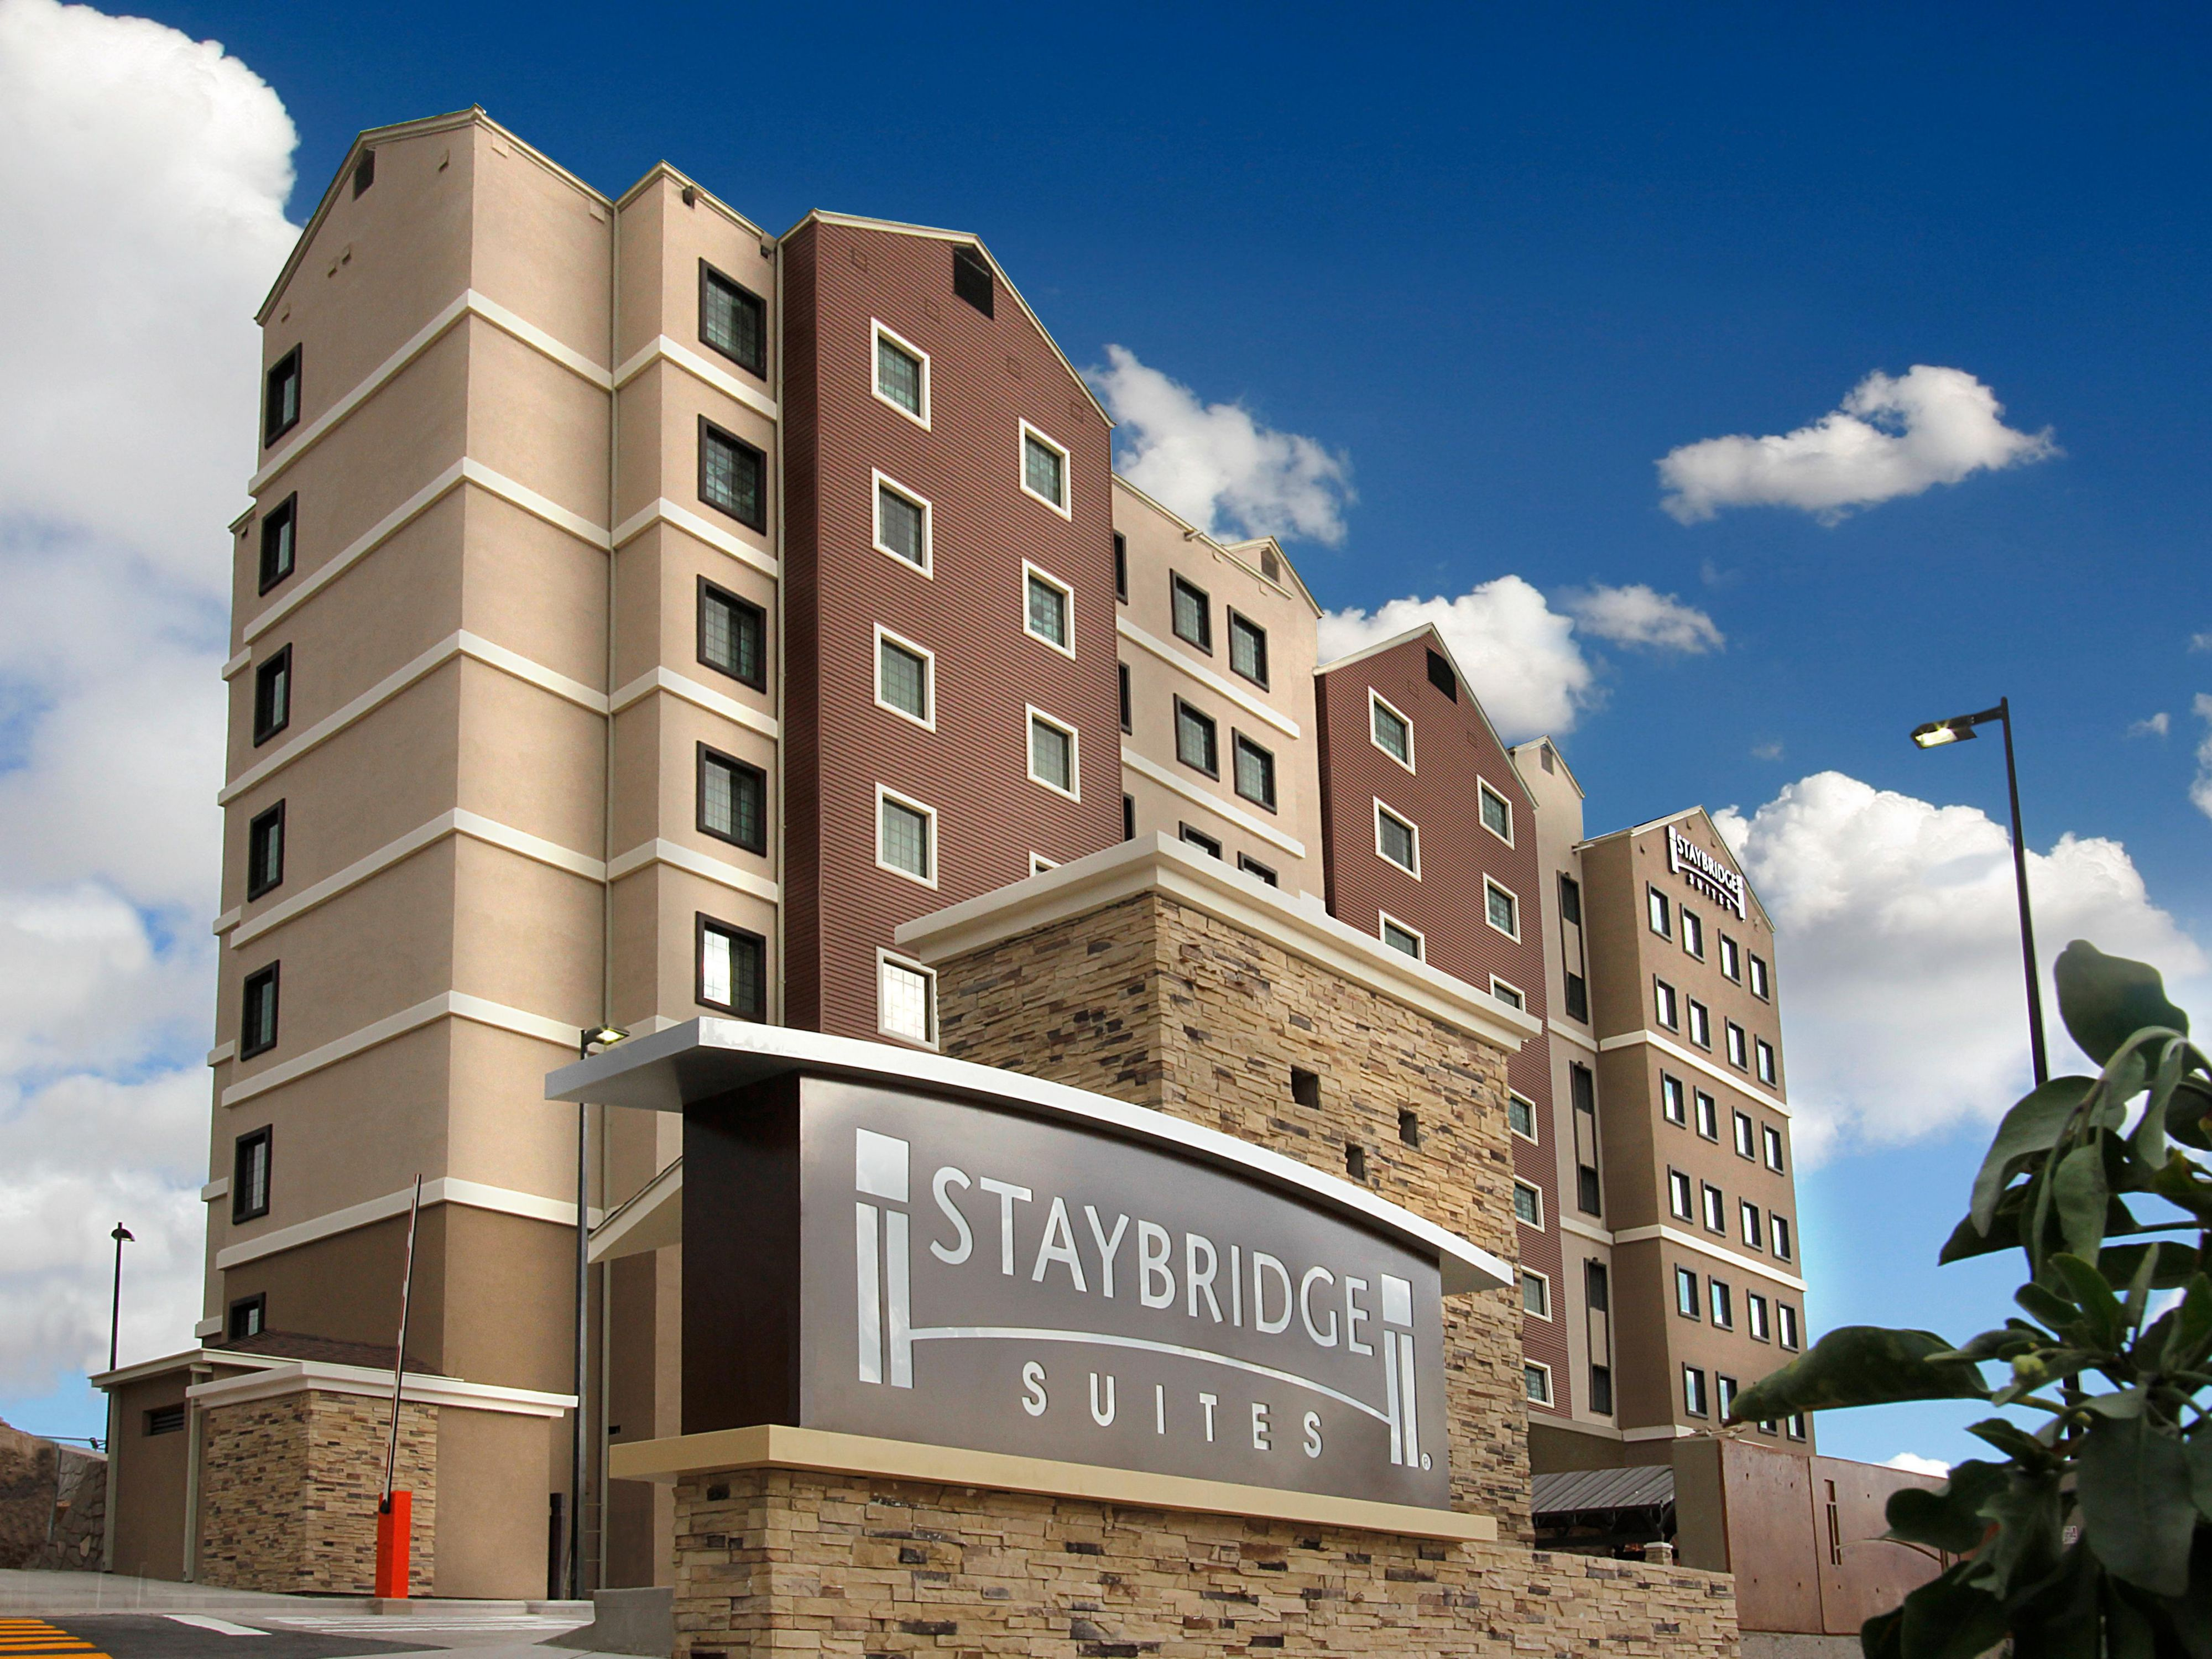 Chihuahua Hotels Staybridge Suites Extended Stay Hotel In Mexico